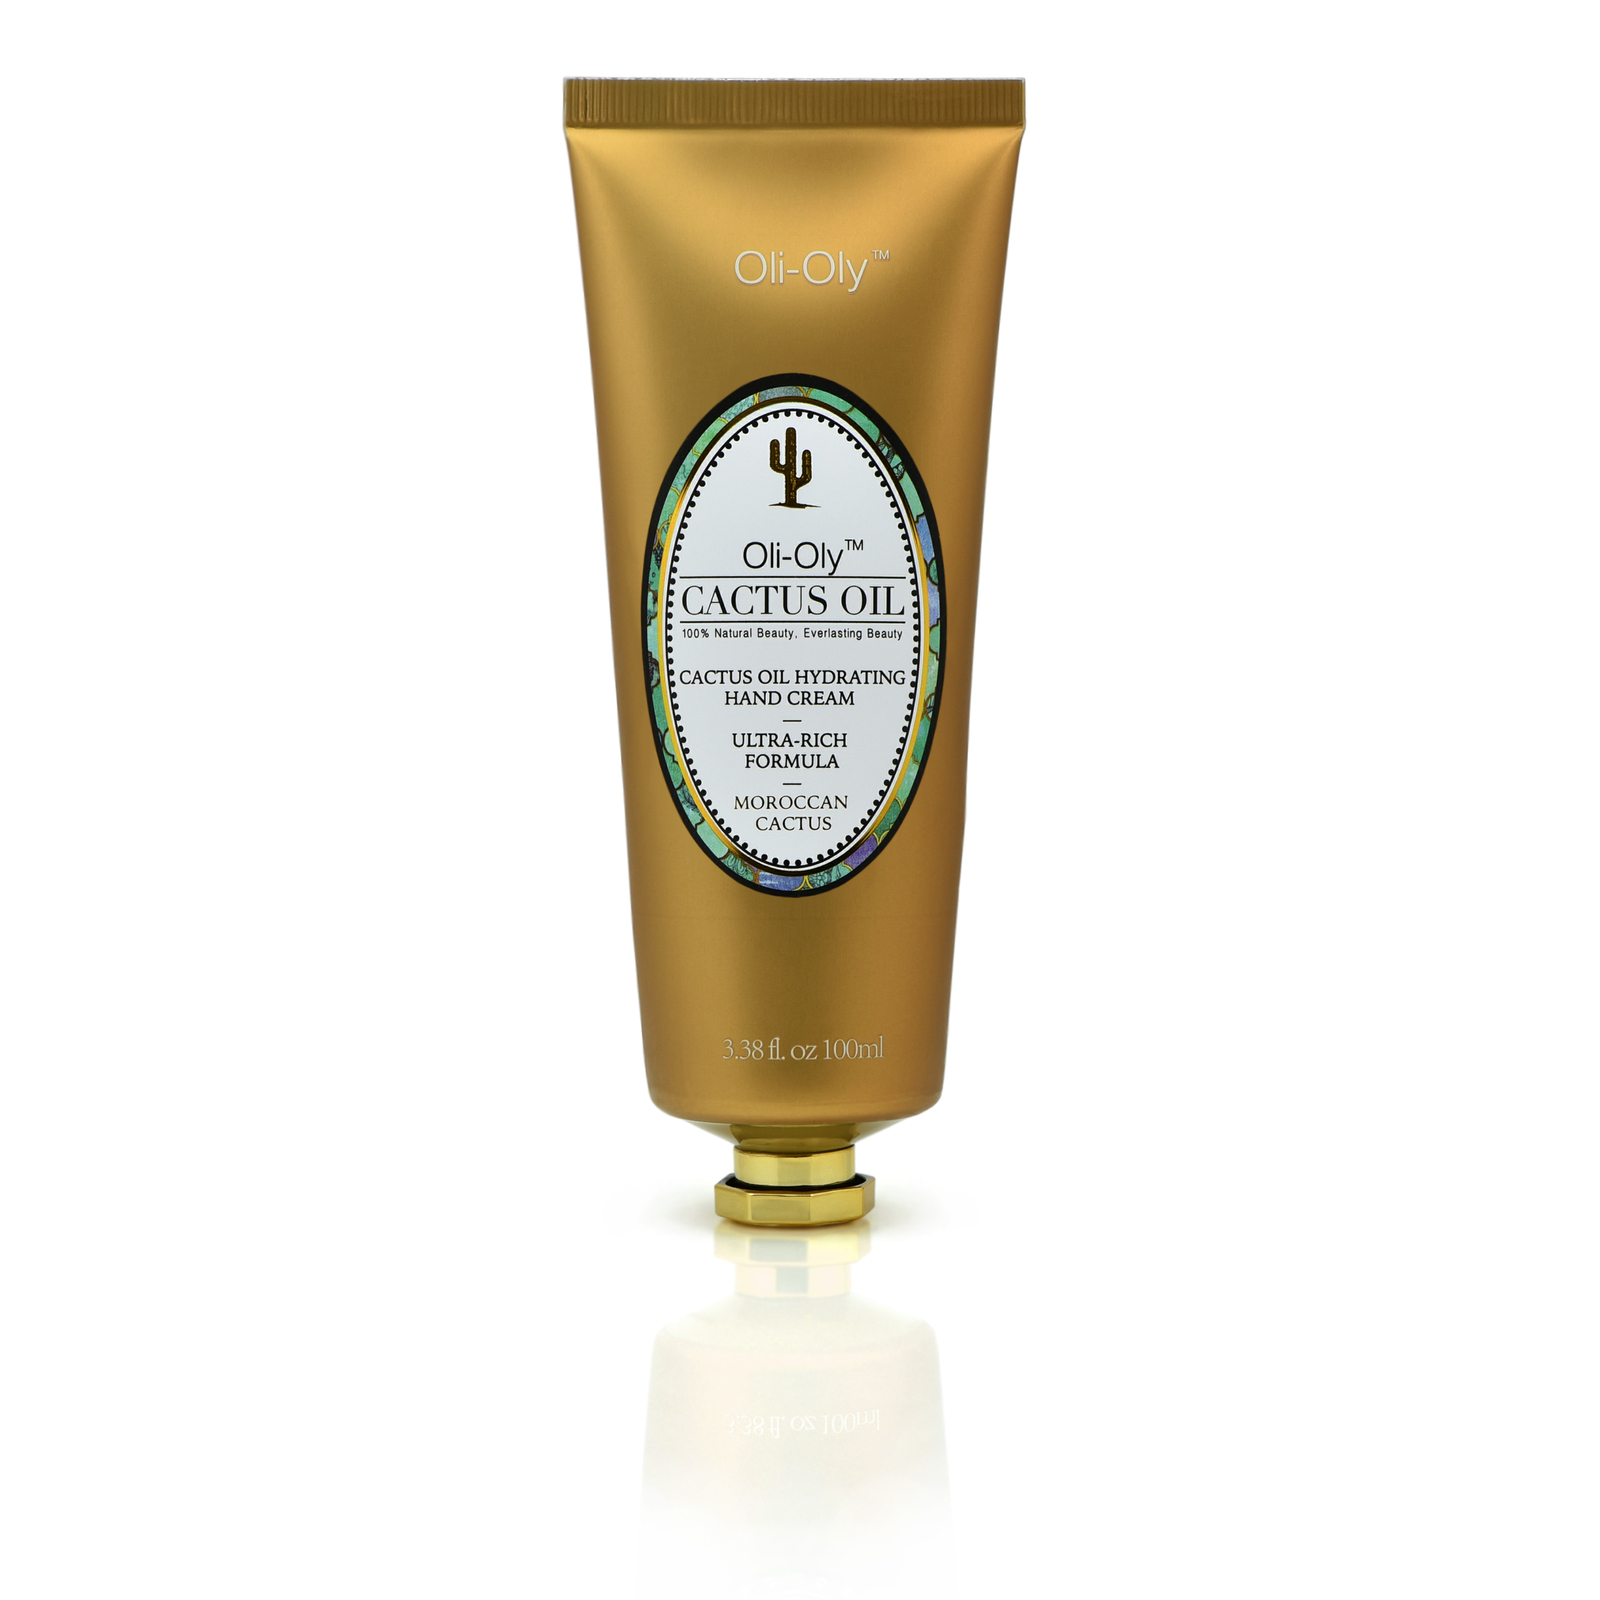 Natural Hydrating Hand Cream with Moroccan Cactus Oil 100 ml by Oli-Oly